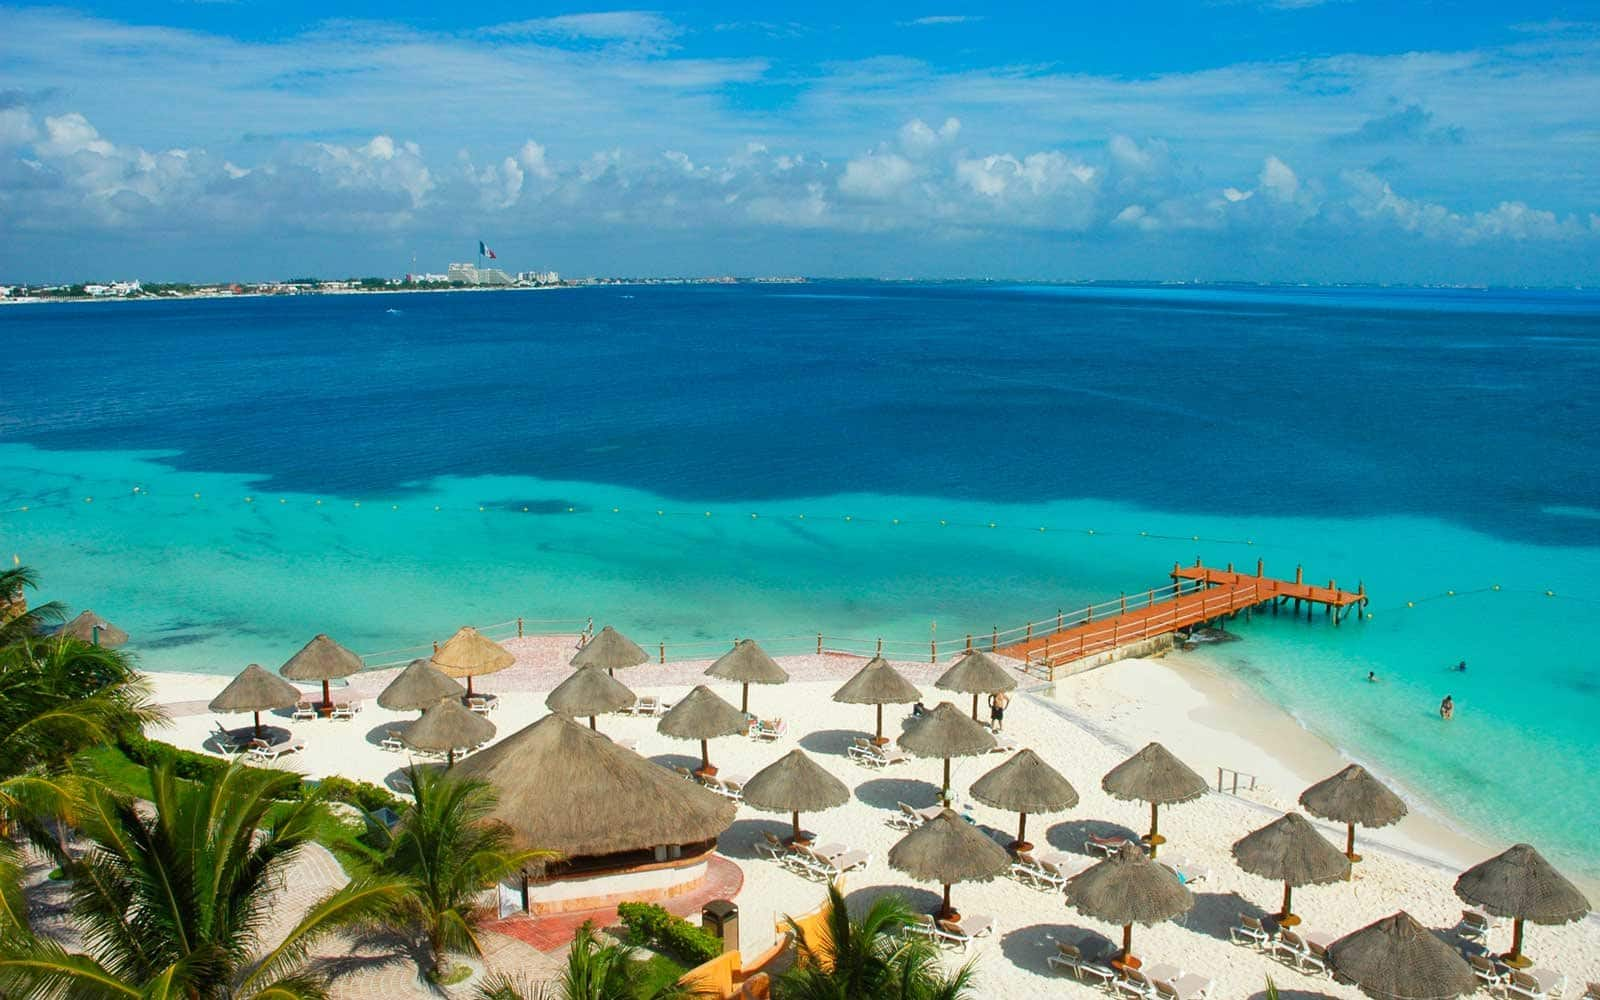 St Louis Missouri to Cancun Mexico $235 RT Airfares on American Airlines BE (Travel November - March 2022)